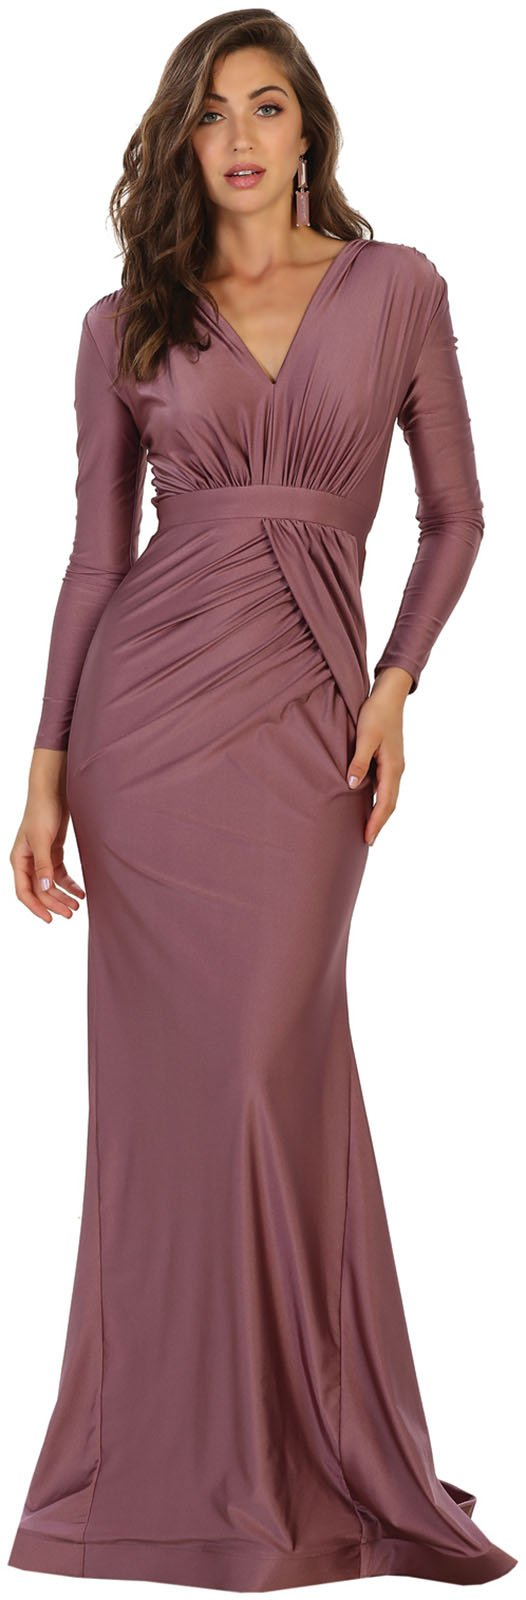 ae96245ac90 May Queen MQ1530 Long Sleeve Simple Evening Prom Dress (12